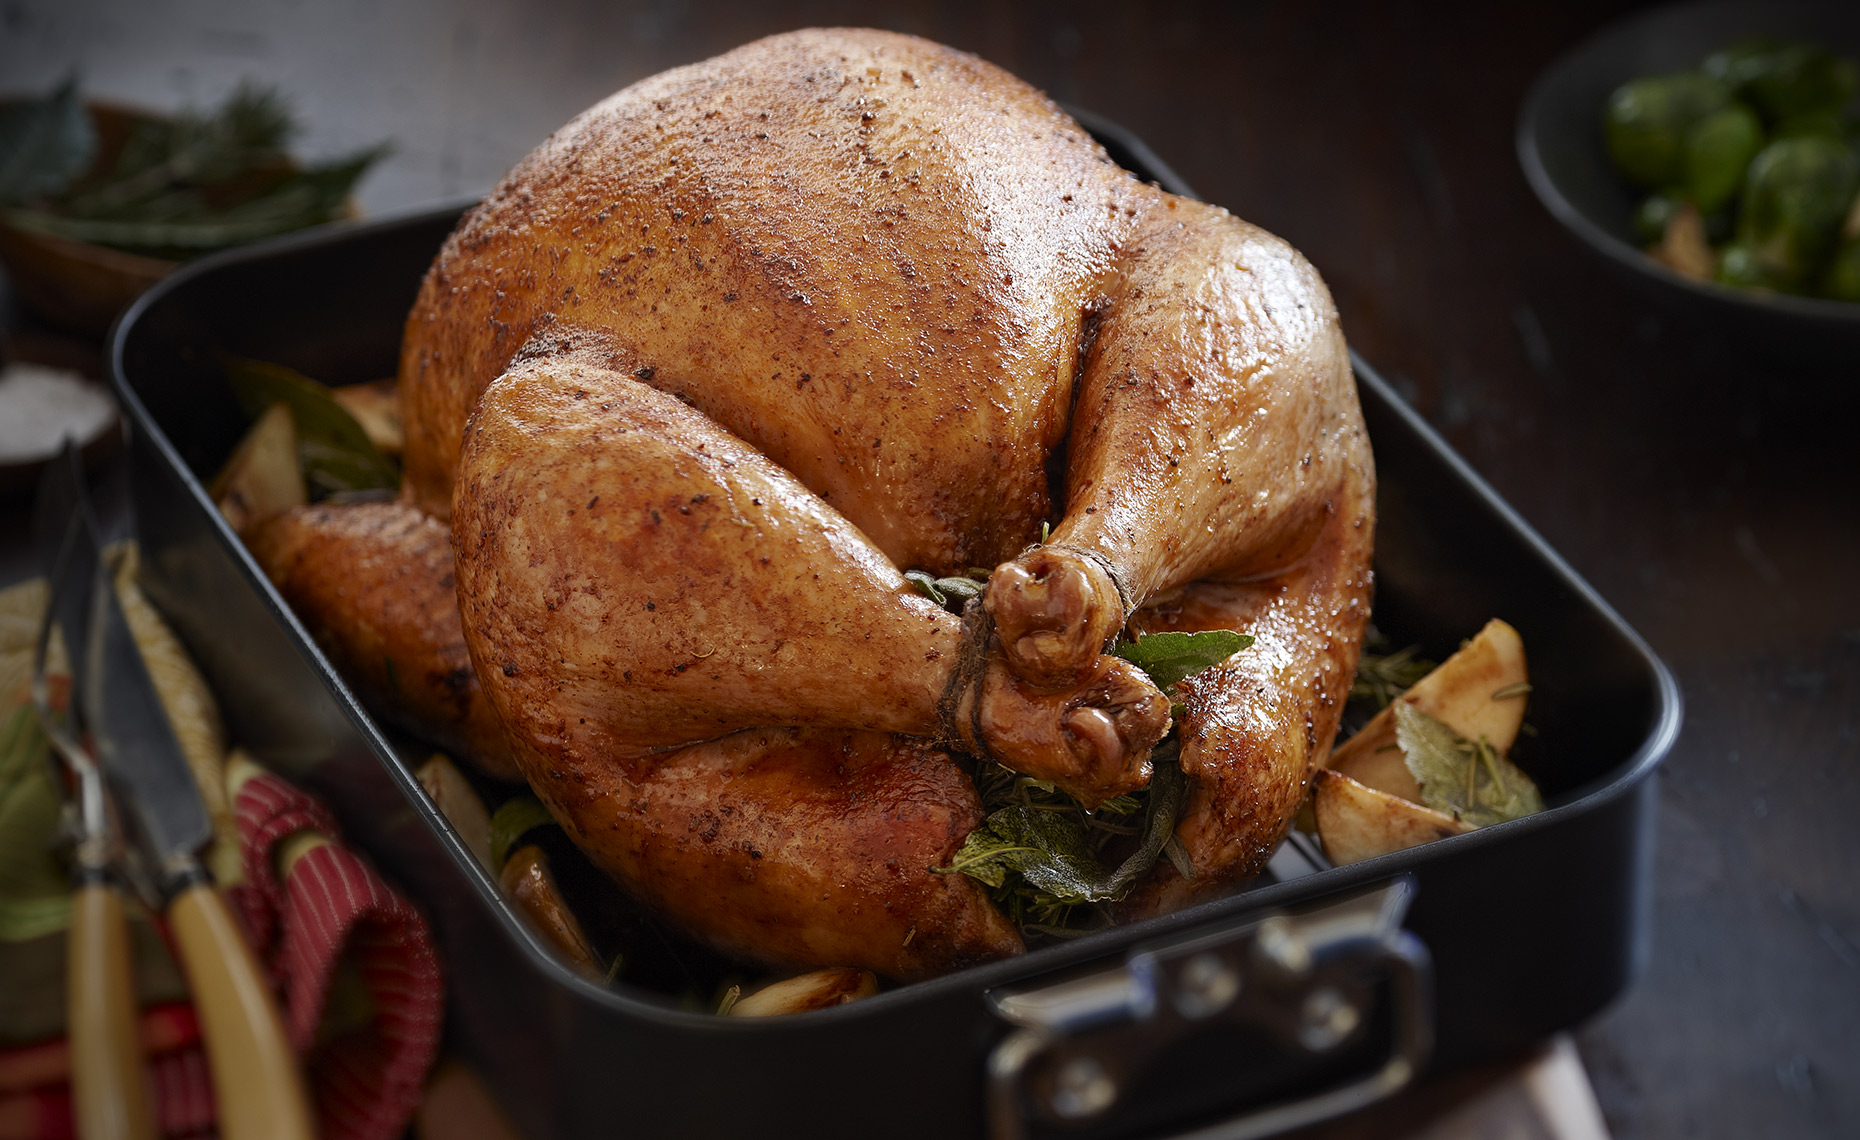 Food Photographer,  Chicken Photography, Poultry Photography | Pohuski Studios,  Roast Turkey